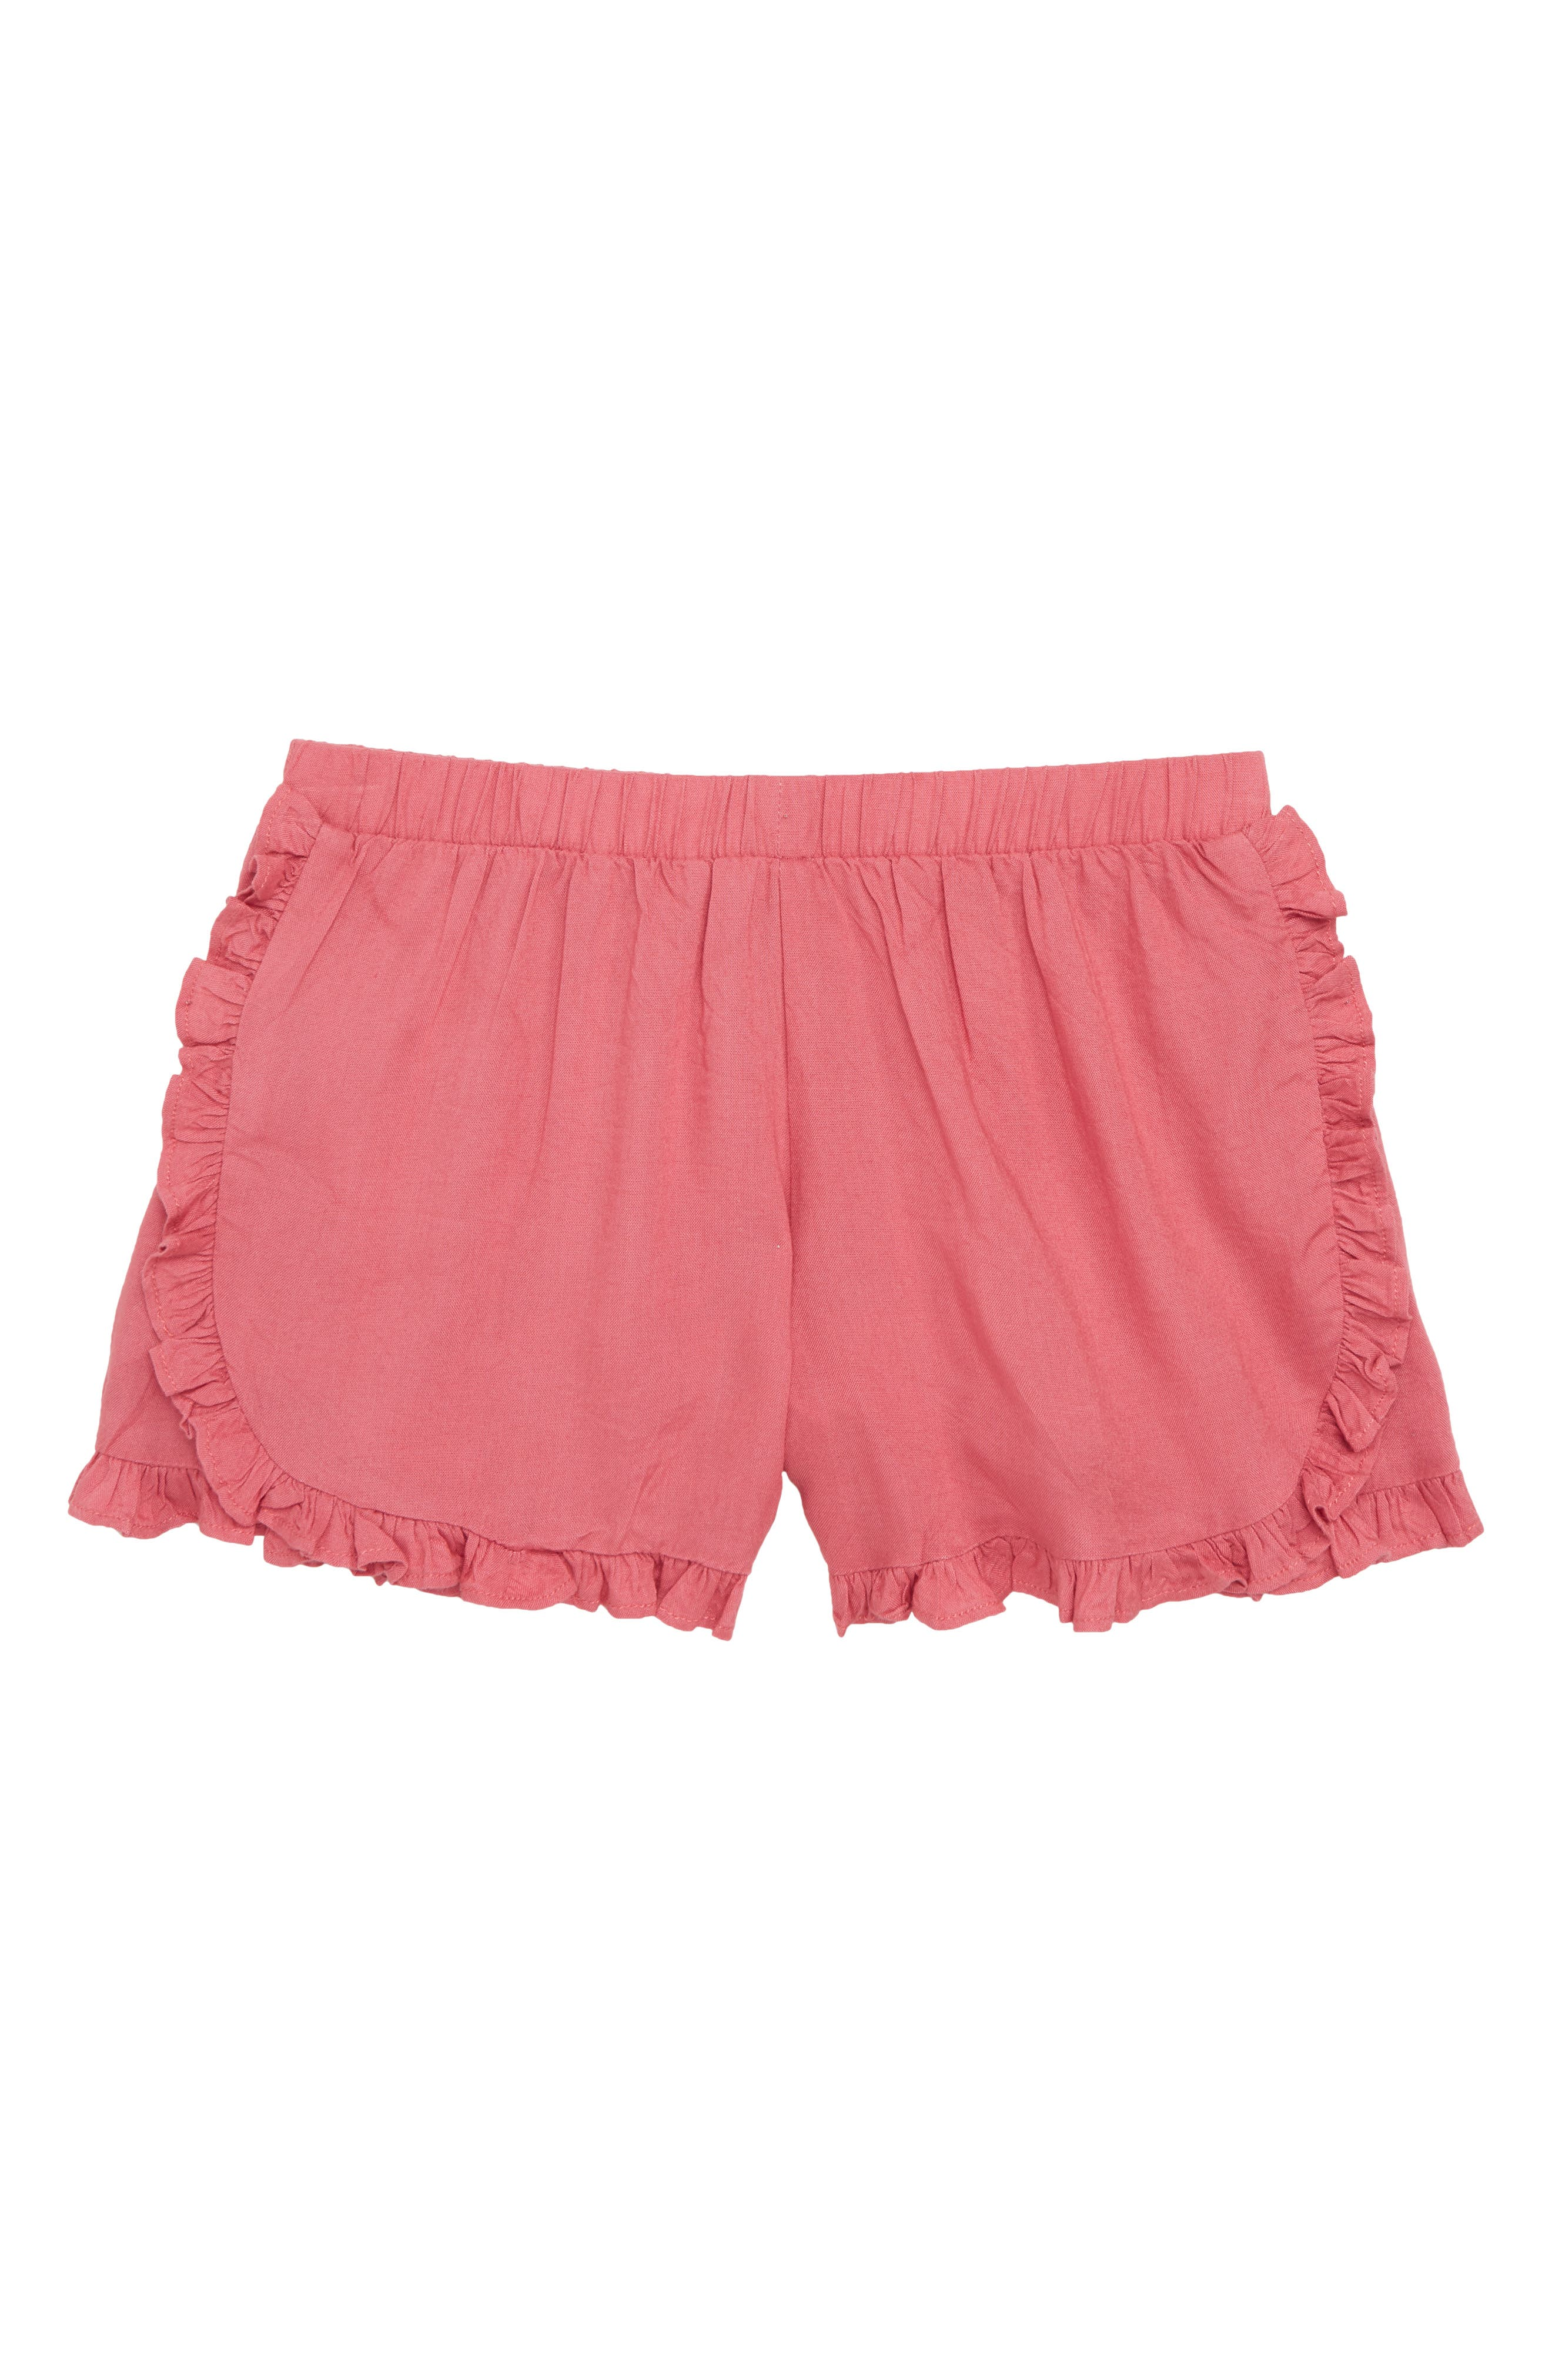 Tanya Shorts,                         Main,                         color, Rose